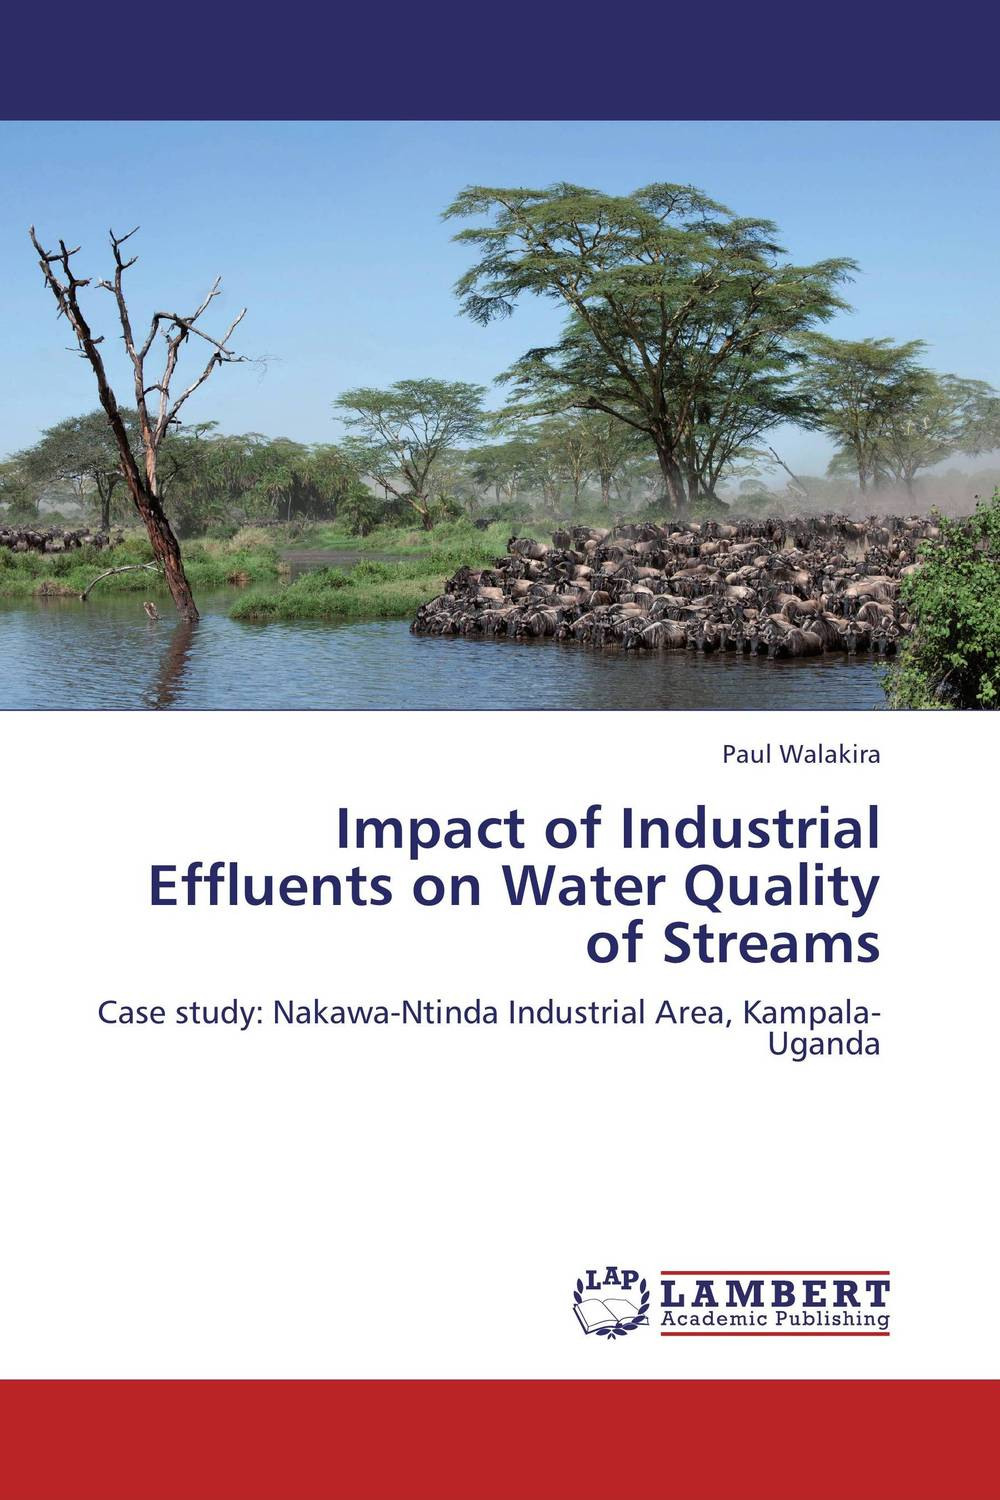 Impact of Industrial Effluents on Water Quality of Streams streams of stream classifications